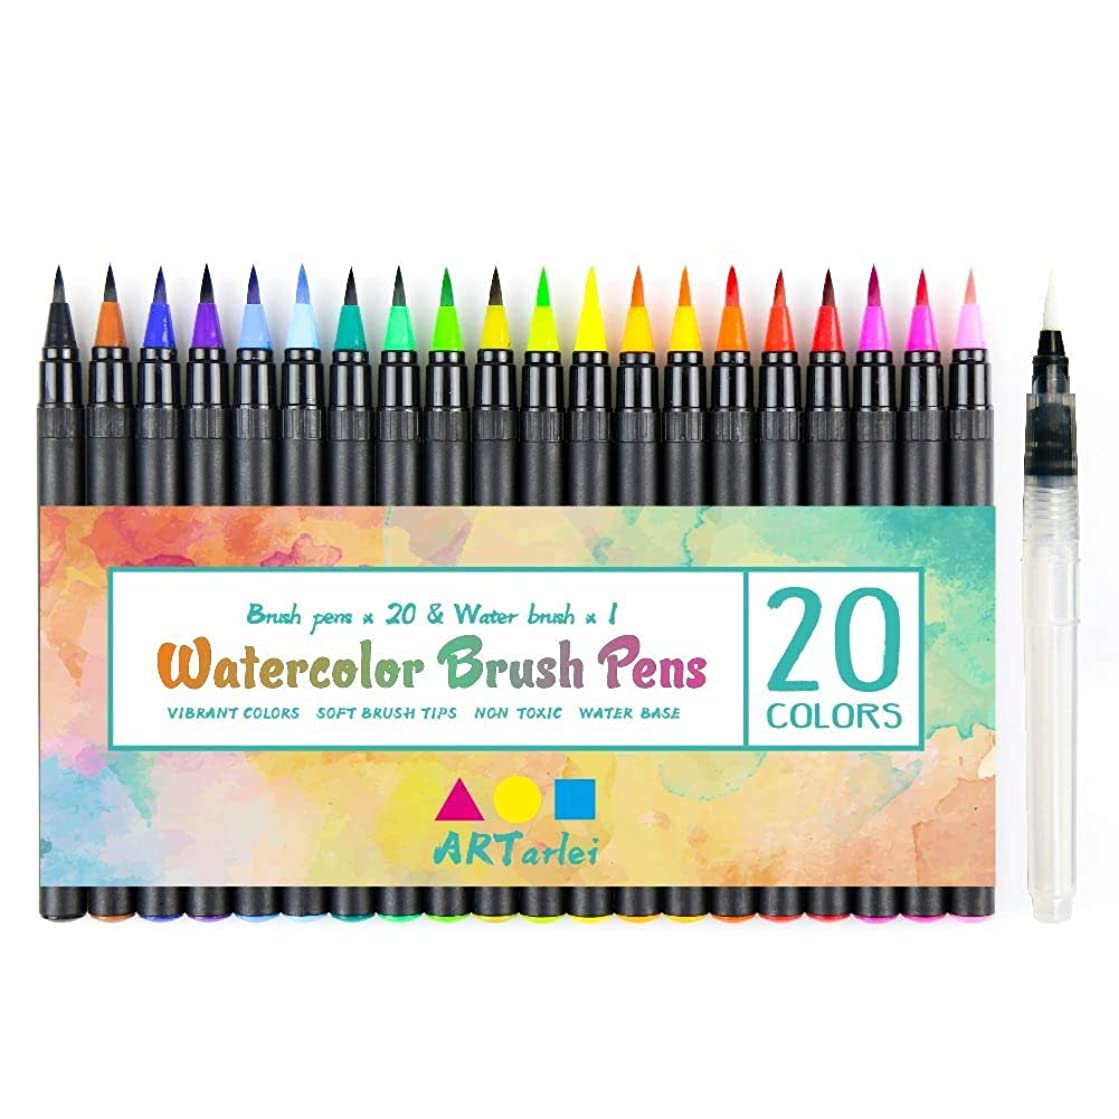 Watercolor Brush Pens Set, 21 Professional Brush Markers with Flexible Brush Tips for Coloring, Calligraphy and Drawing Water Brush for Artists and Beginner Painters